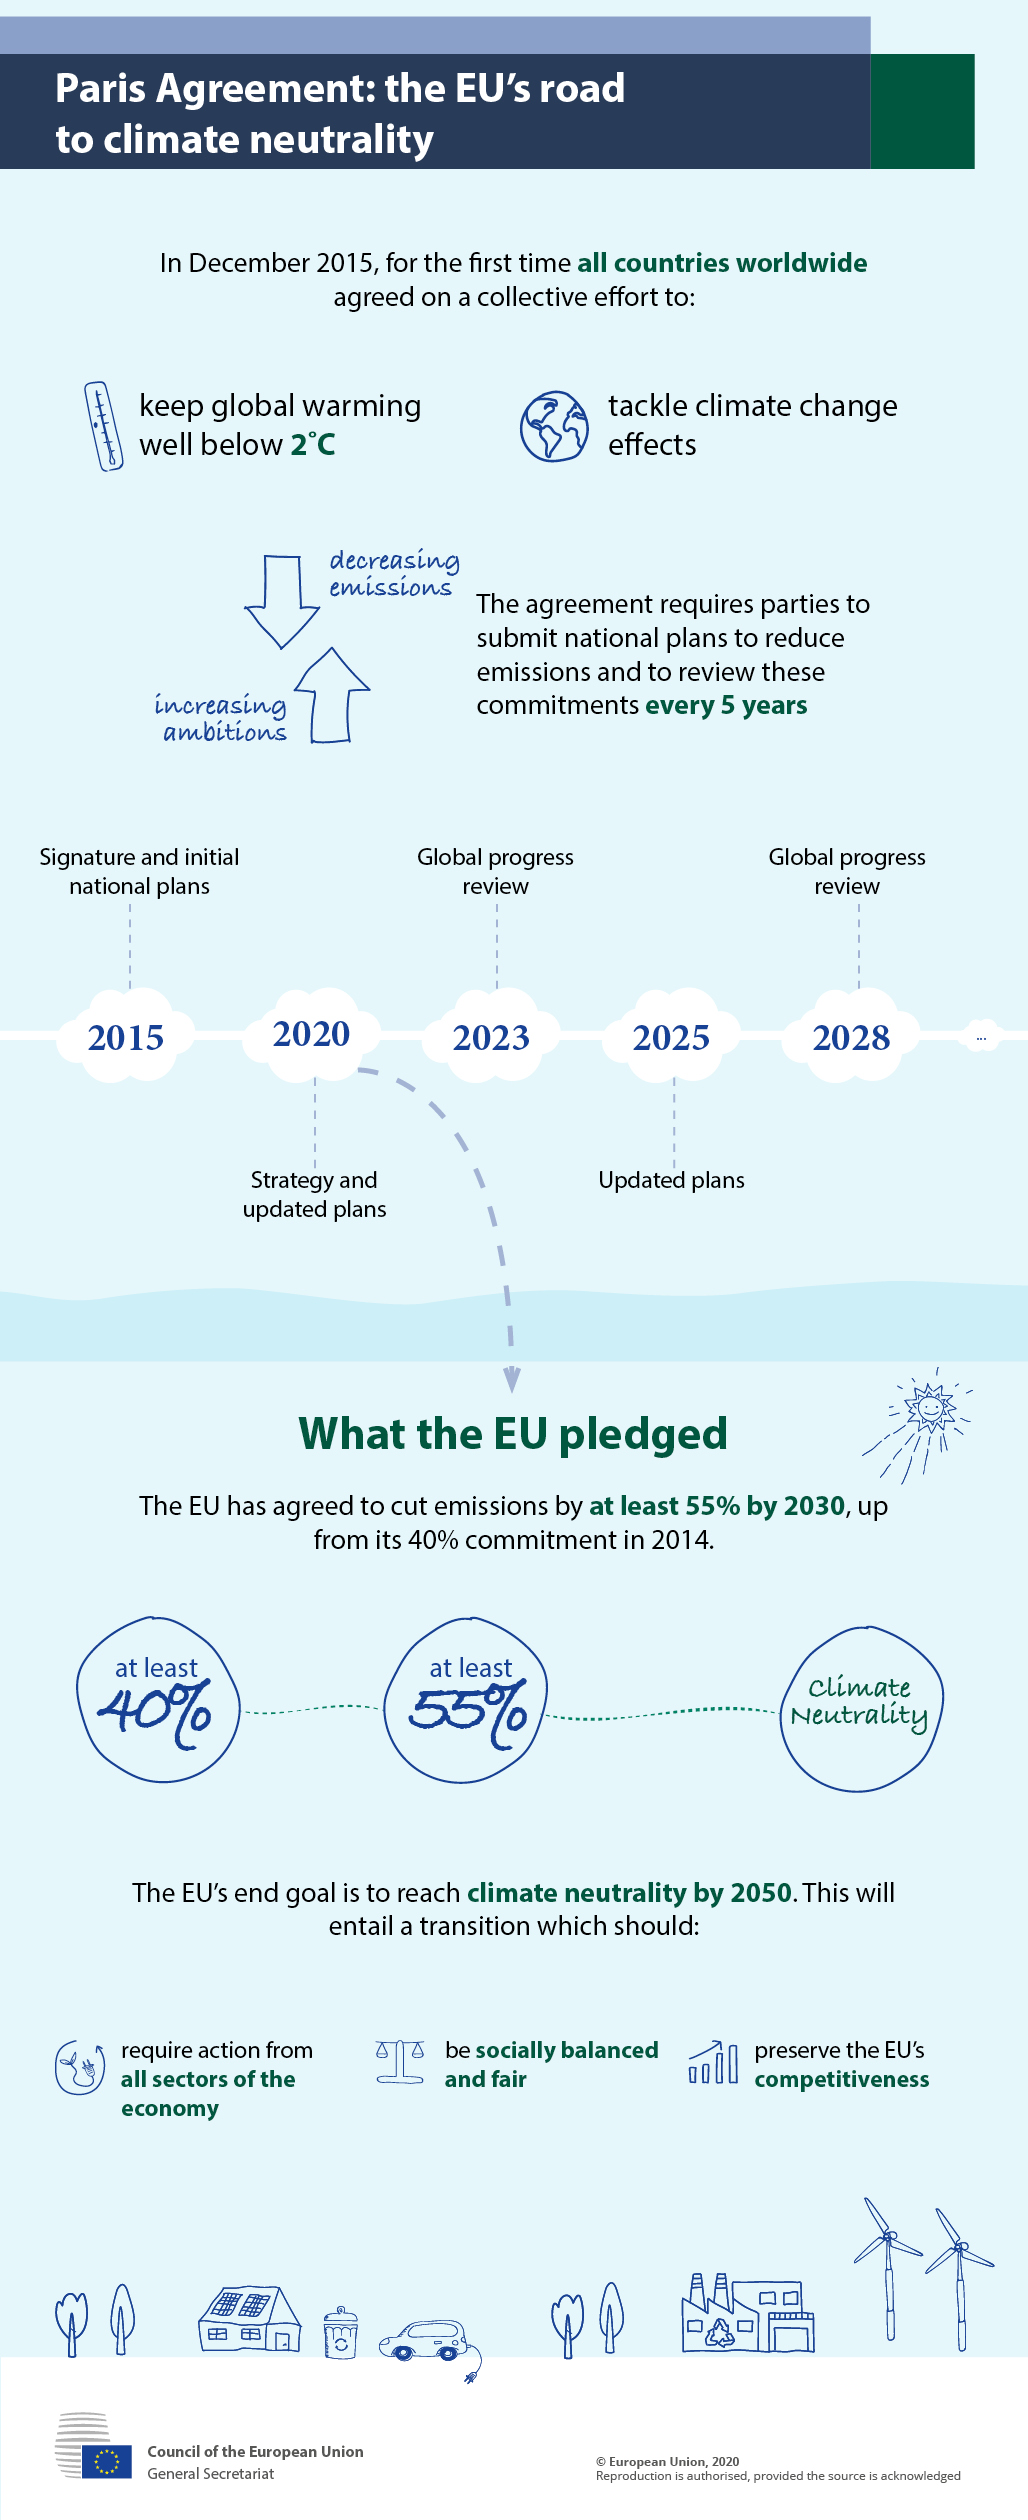 In December 2015, for the first time all countries worldwide agreed on a collective effort to:  keep global warming well below 2˚C tackle climate change effects The agreement requires parties to submit national plans to reduce emissions and to review these commitments every 5 years.  2015  Signature and initial national plans  2020  Strategy and updated plans   2023  Global progress review  2025  Updated plans  2028  Global progress review  ….  What the EU pledged  The EU has agreed to cut emissions by at least 55% by 2030, up from its 40% commitment in 2014.  Its end goal is to reach climate neutrality by 2050. This will require a transition which should:  require action from all sectors of the economy be socially balanced and fair preserve the EU's competitiveness.